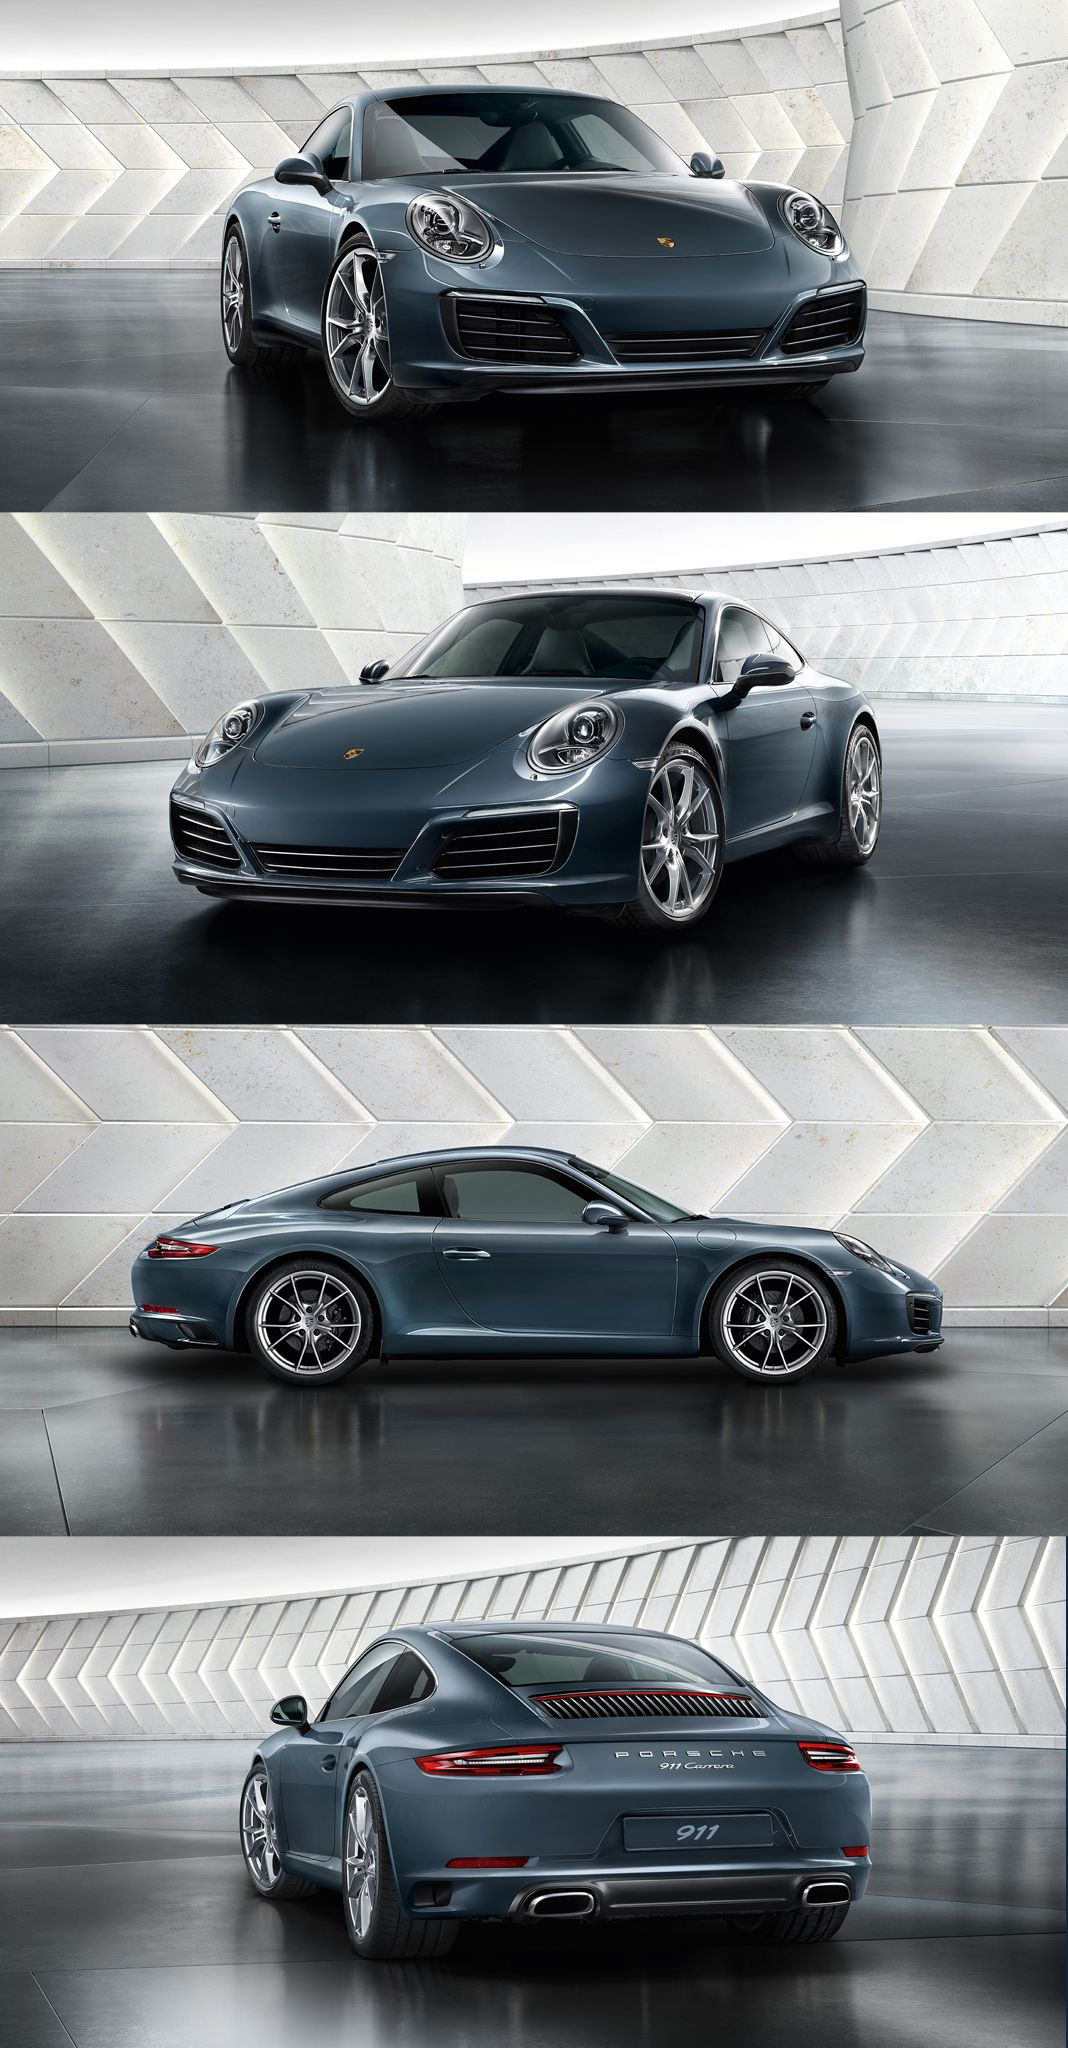 best 25 porsche dealers ideas on pinterest porsche 991 porsche 118 and new porsche. Black Bedroom Furniture Sets. Home Design Ideas